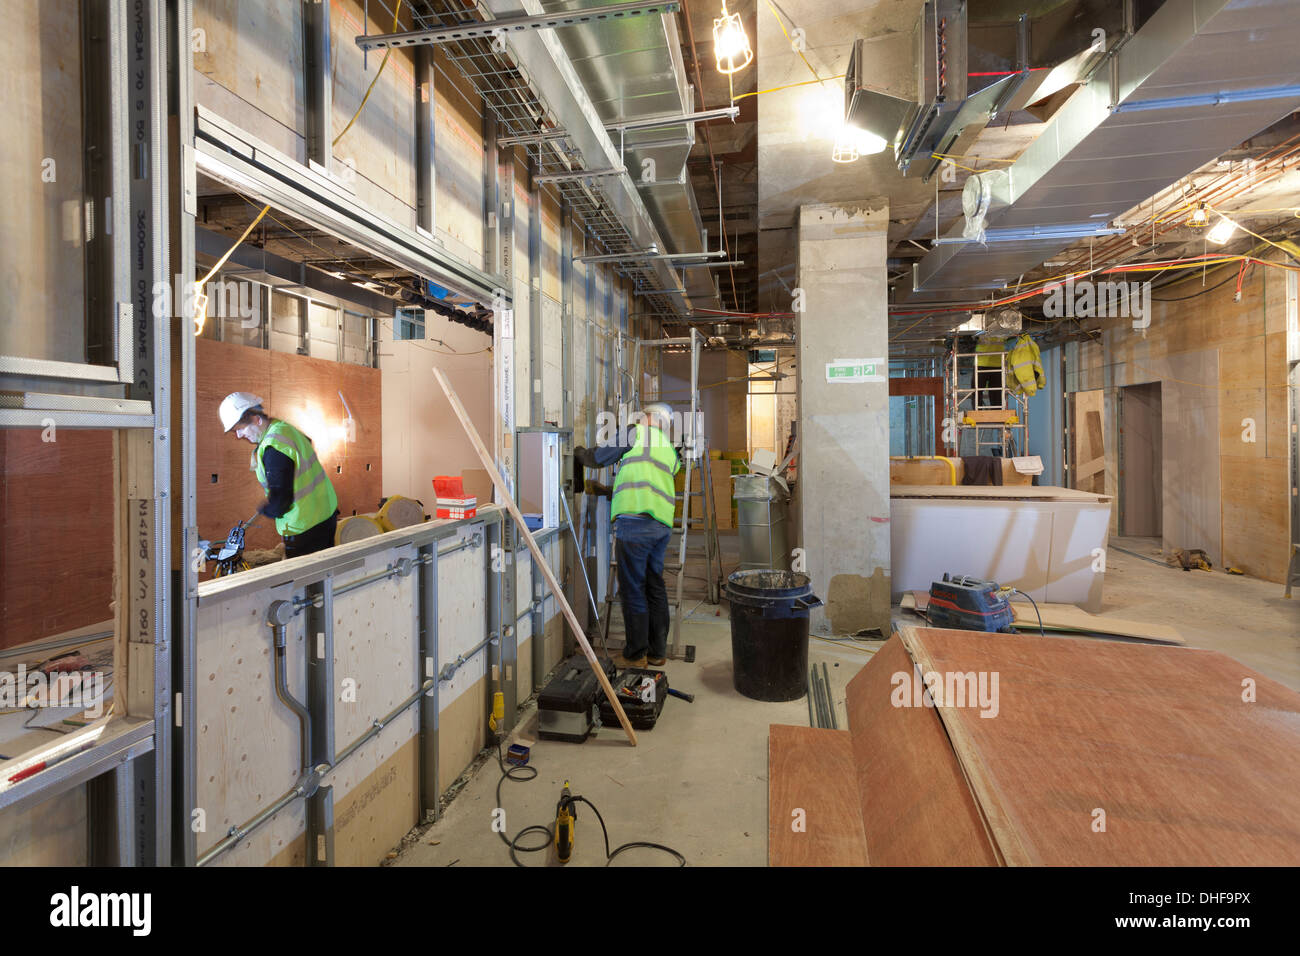 Builders working inside a construction site. - Stock Image